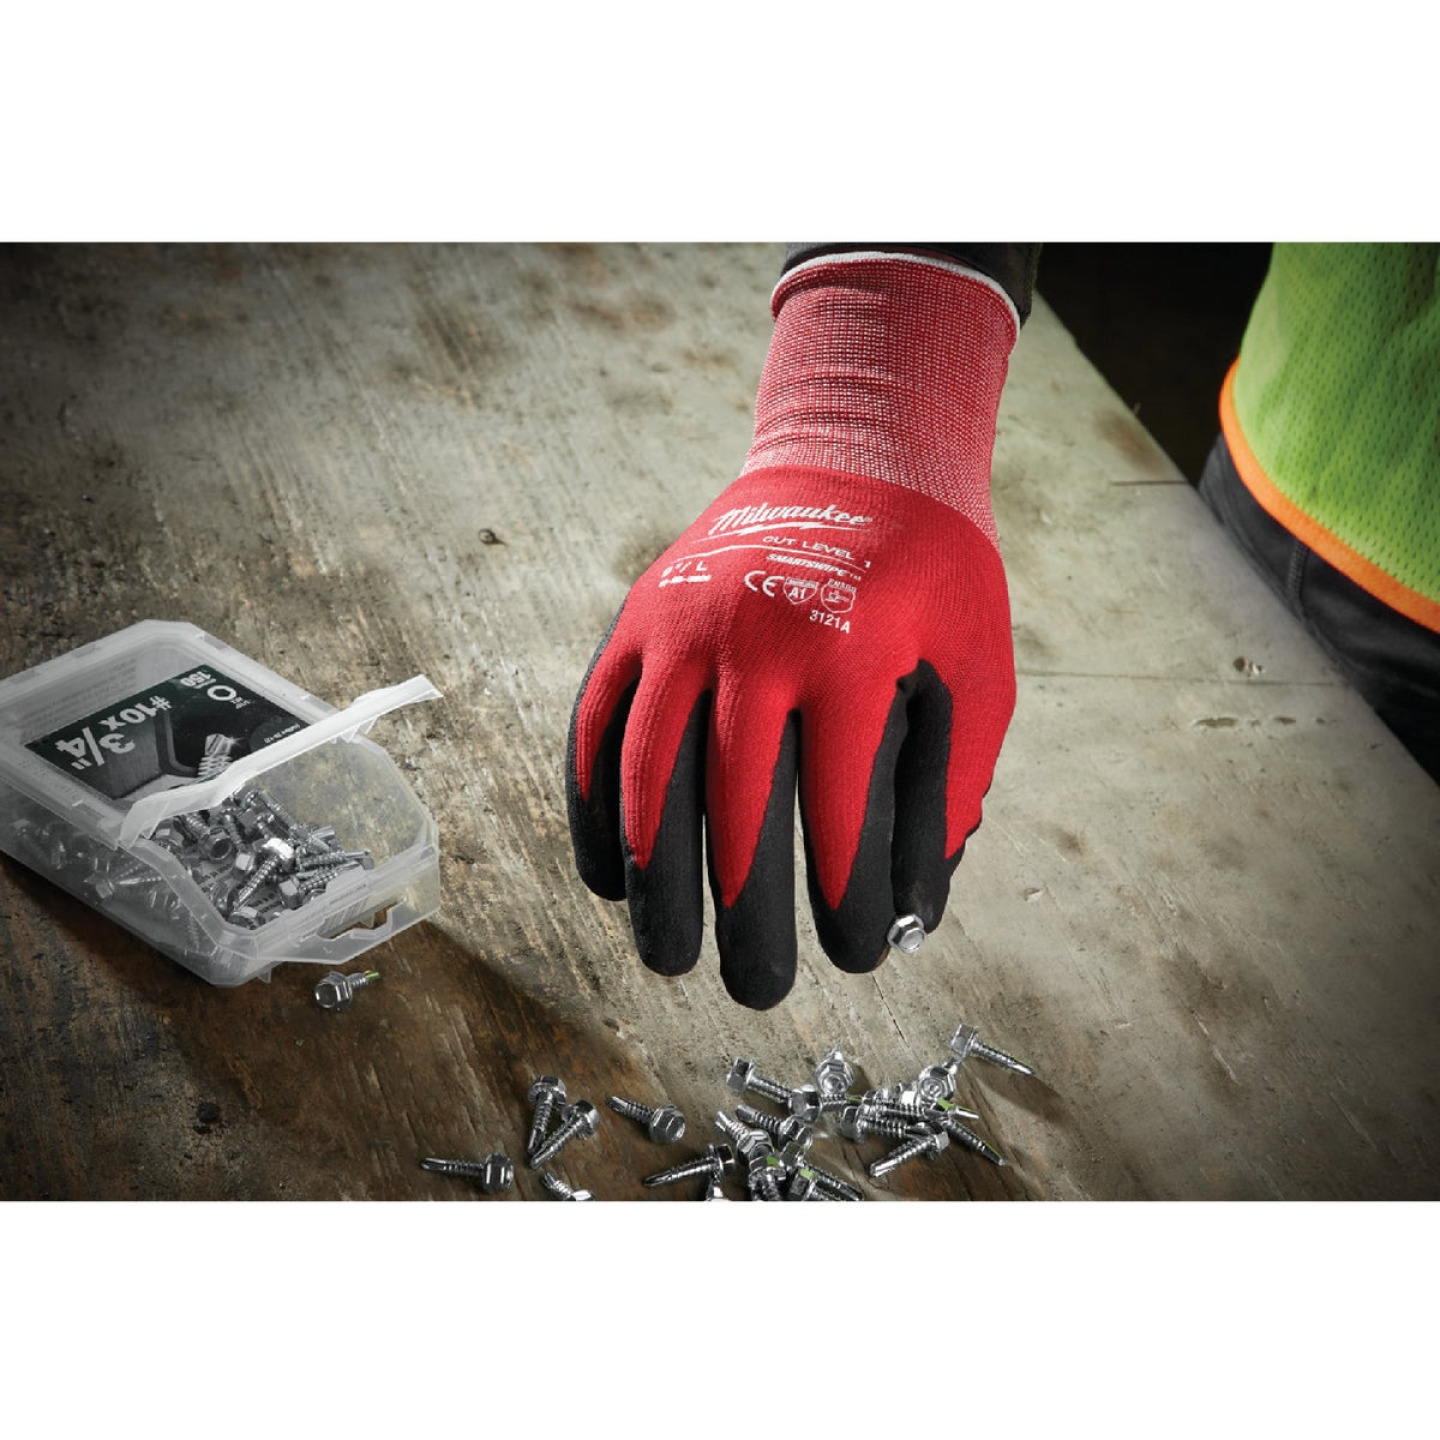 Milwaukee Men's XL Nitrile Coated Cut Level 1 Work Glove Image 3